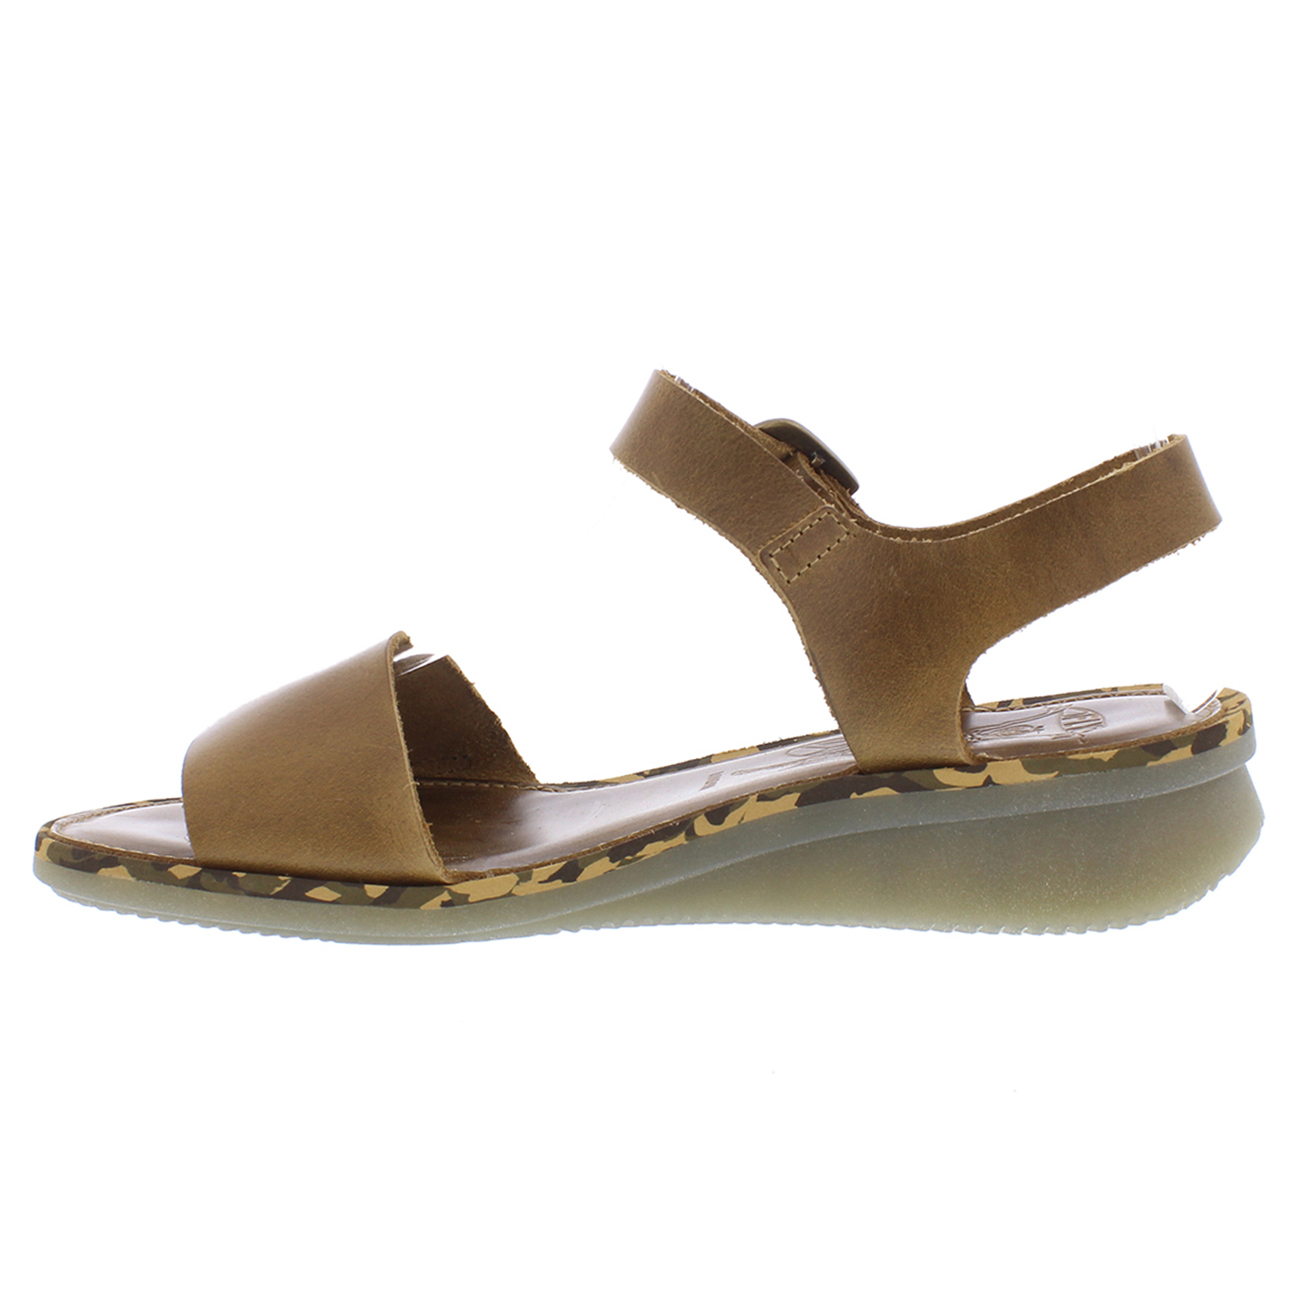 Womens Fly London Comb Bridle Open Toe Cut Out Buckle Low Wedge Sandals UK 3-9